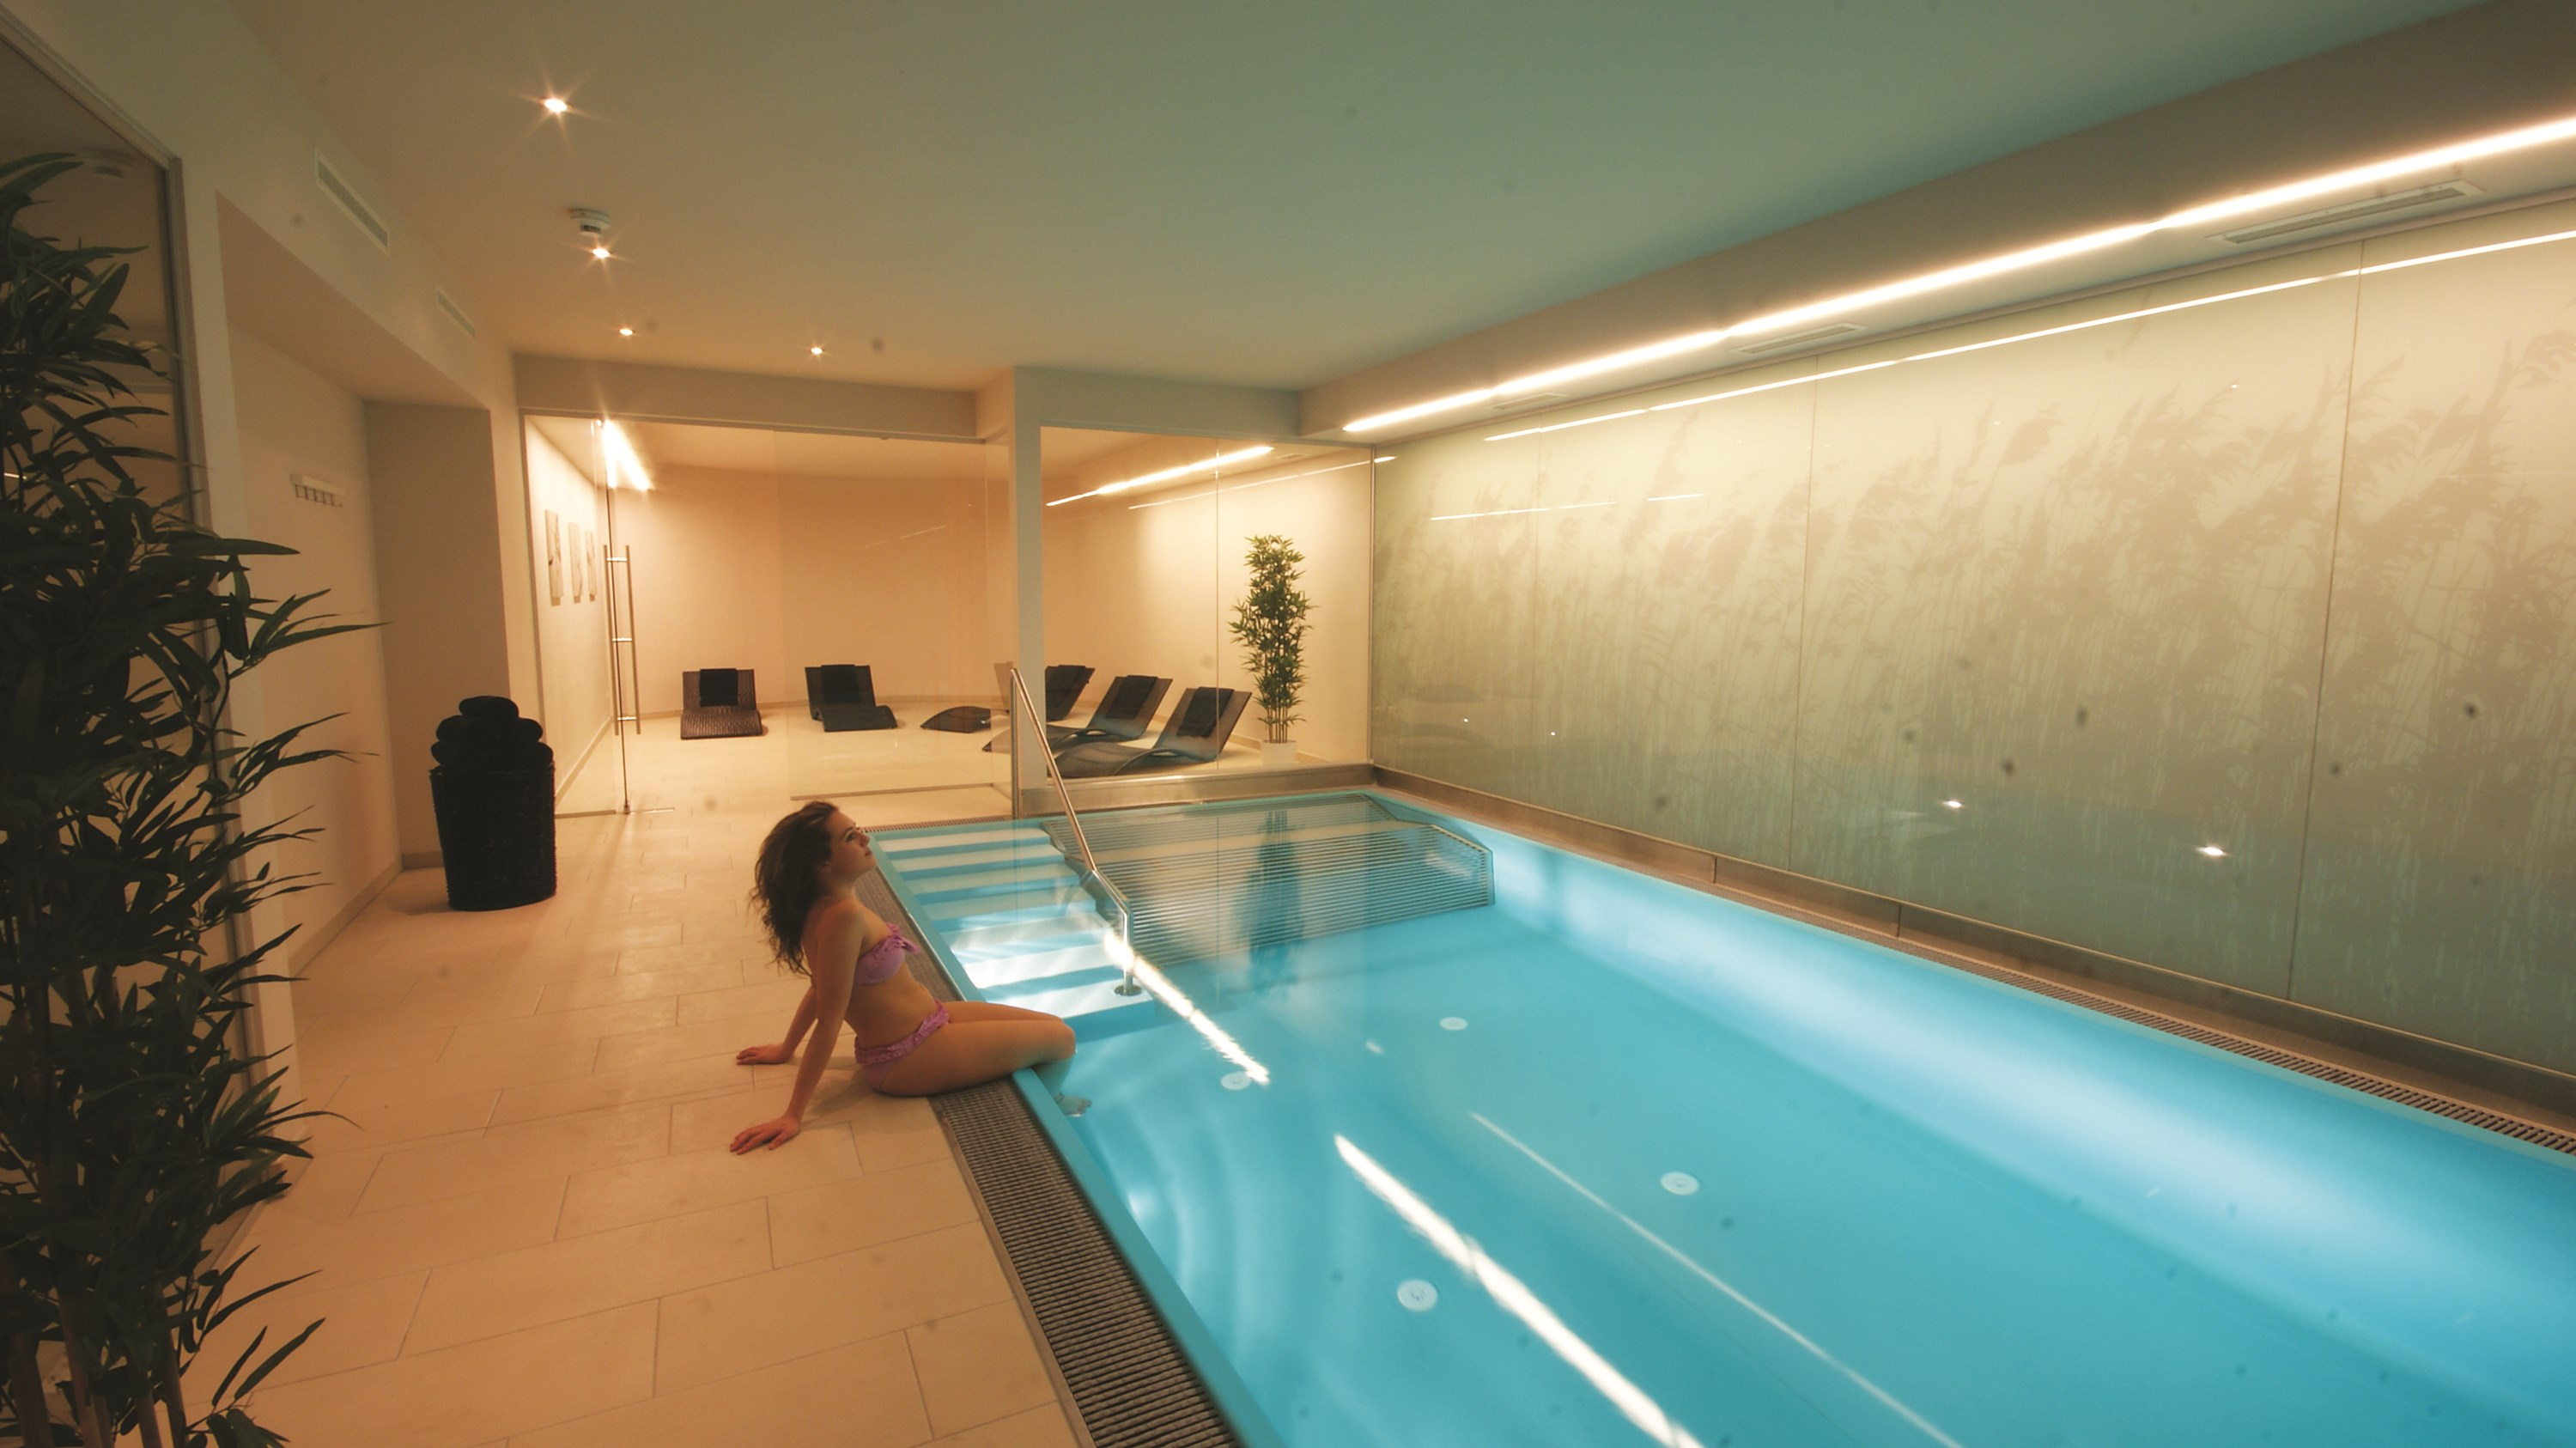 M. Lodge indoor pool with girl.jpg